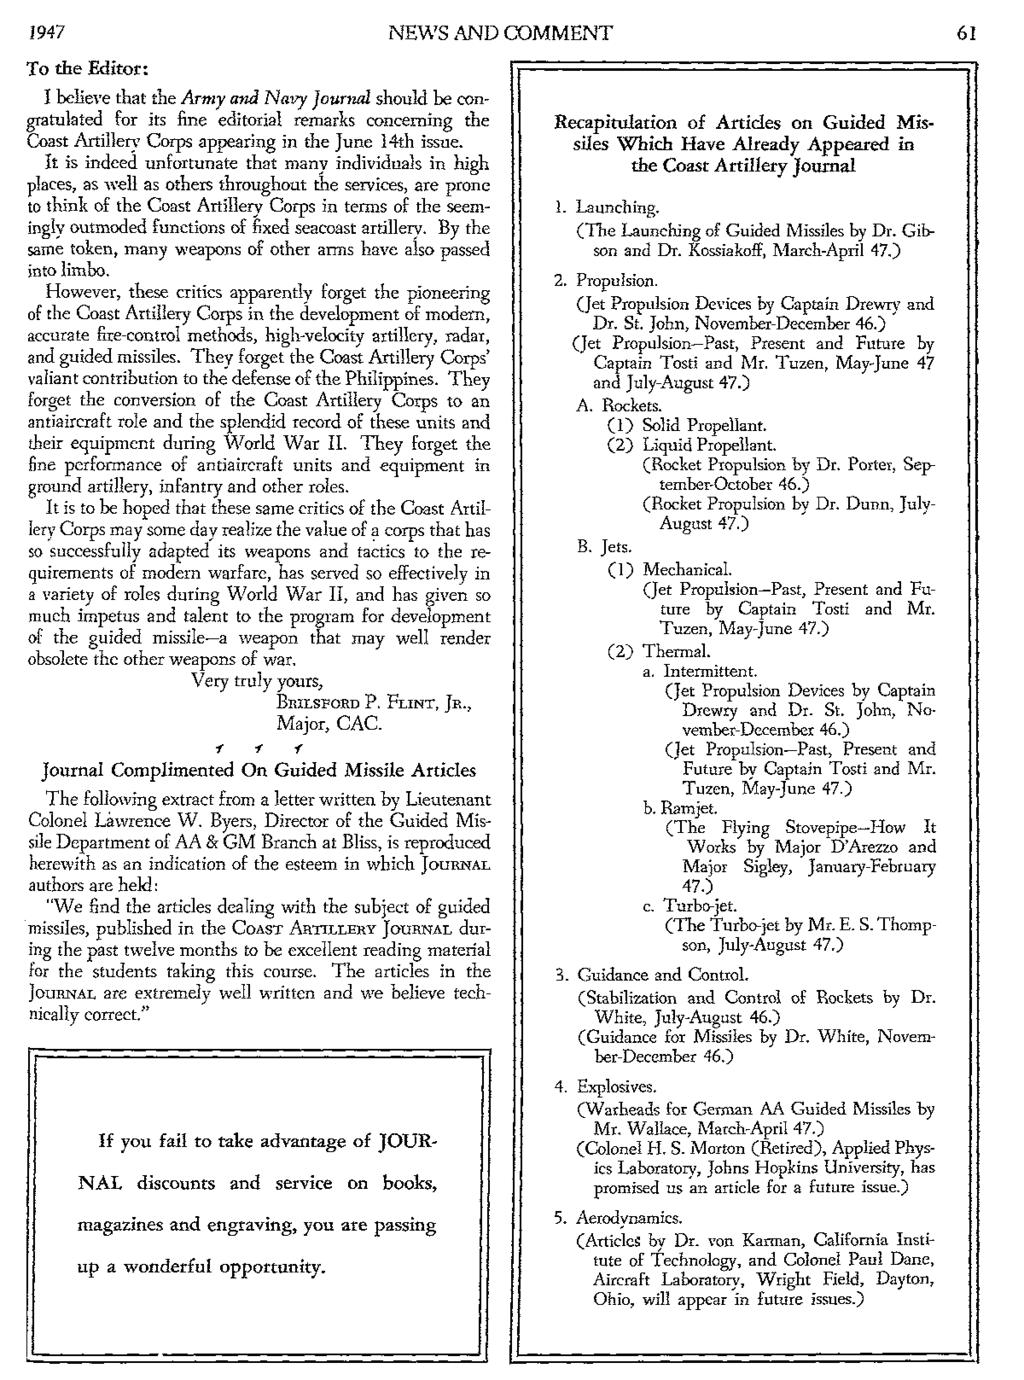 1947 NEWS AND COMMENT 61 To the Editor: believe that the Army and Navy Journal should be congratulated for its fine editorial remarks concerning the Coast Artillery Corps appearing in the June 14th